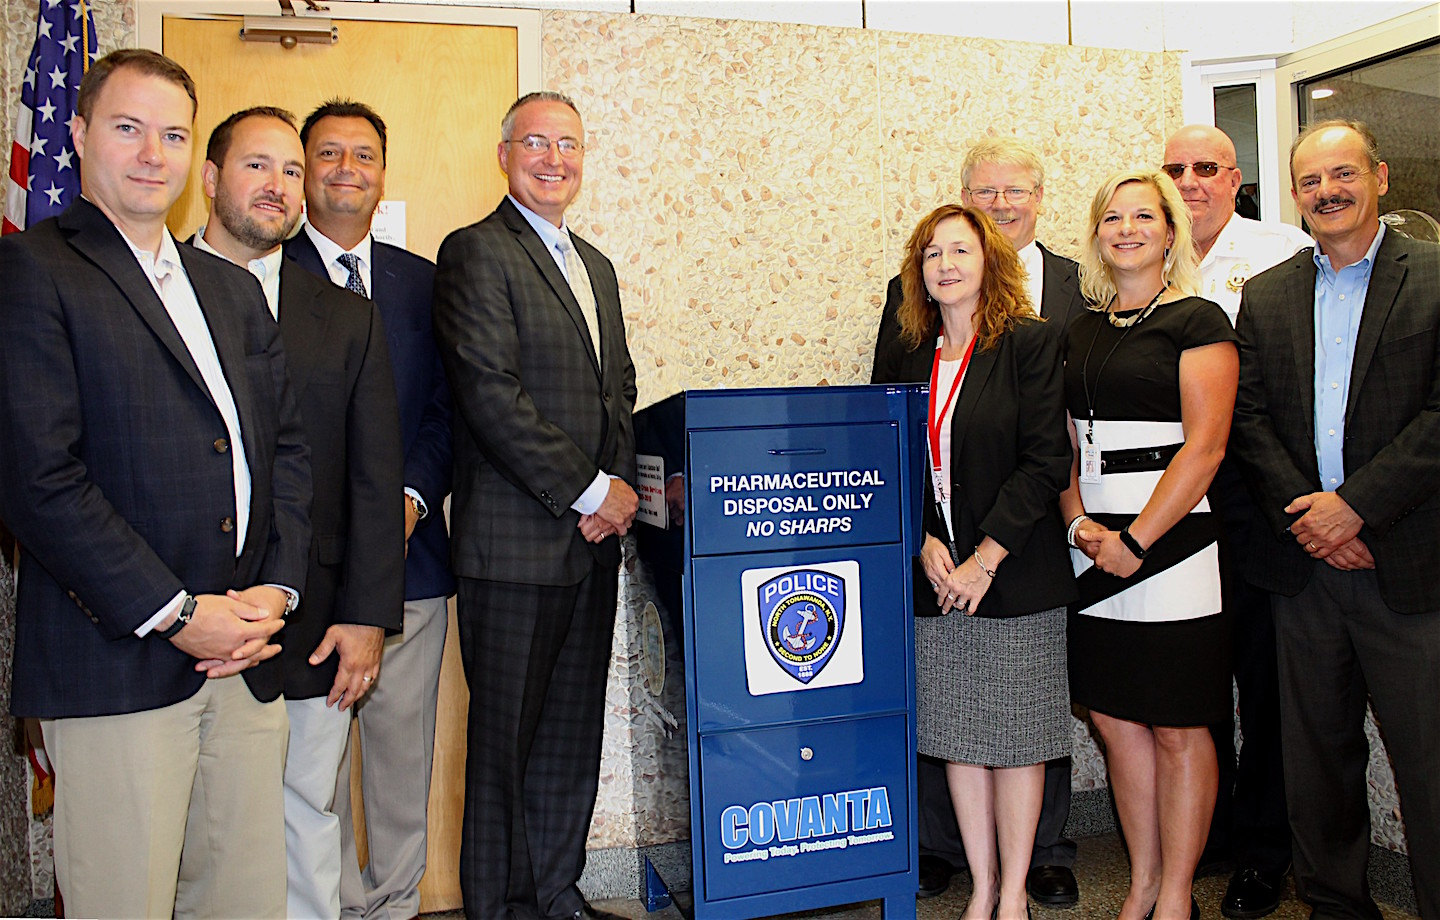 North Tonawanda community leaders gather around a pharmaceutical collection bin located at the North Tonawanda Police Department, 216 Payne Ave., that was dedicated this morning and allows residents to dispose of prescription drugs safely. From left are Sen. Robert G. Ortt, Niagara County Legislator Rich Andres, majority leader Randy R. Bradt, Niagara County Director of Public Health Director Dan Stapleton, Niagara County Director of Mental Health Laura Kelemen, Covanta Niagara Business Manager Kevin O'Neil, Niagara County Environmental Coordinator Dawn Timm, North Tonawanda Police Chief William R. Hall, and Horizon Health Services Treatment Specialist Bill Bly.